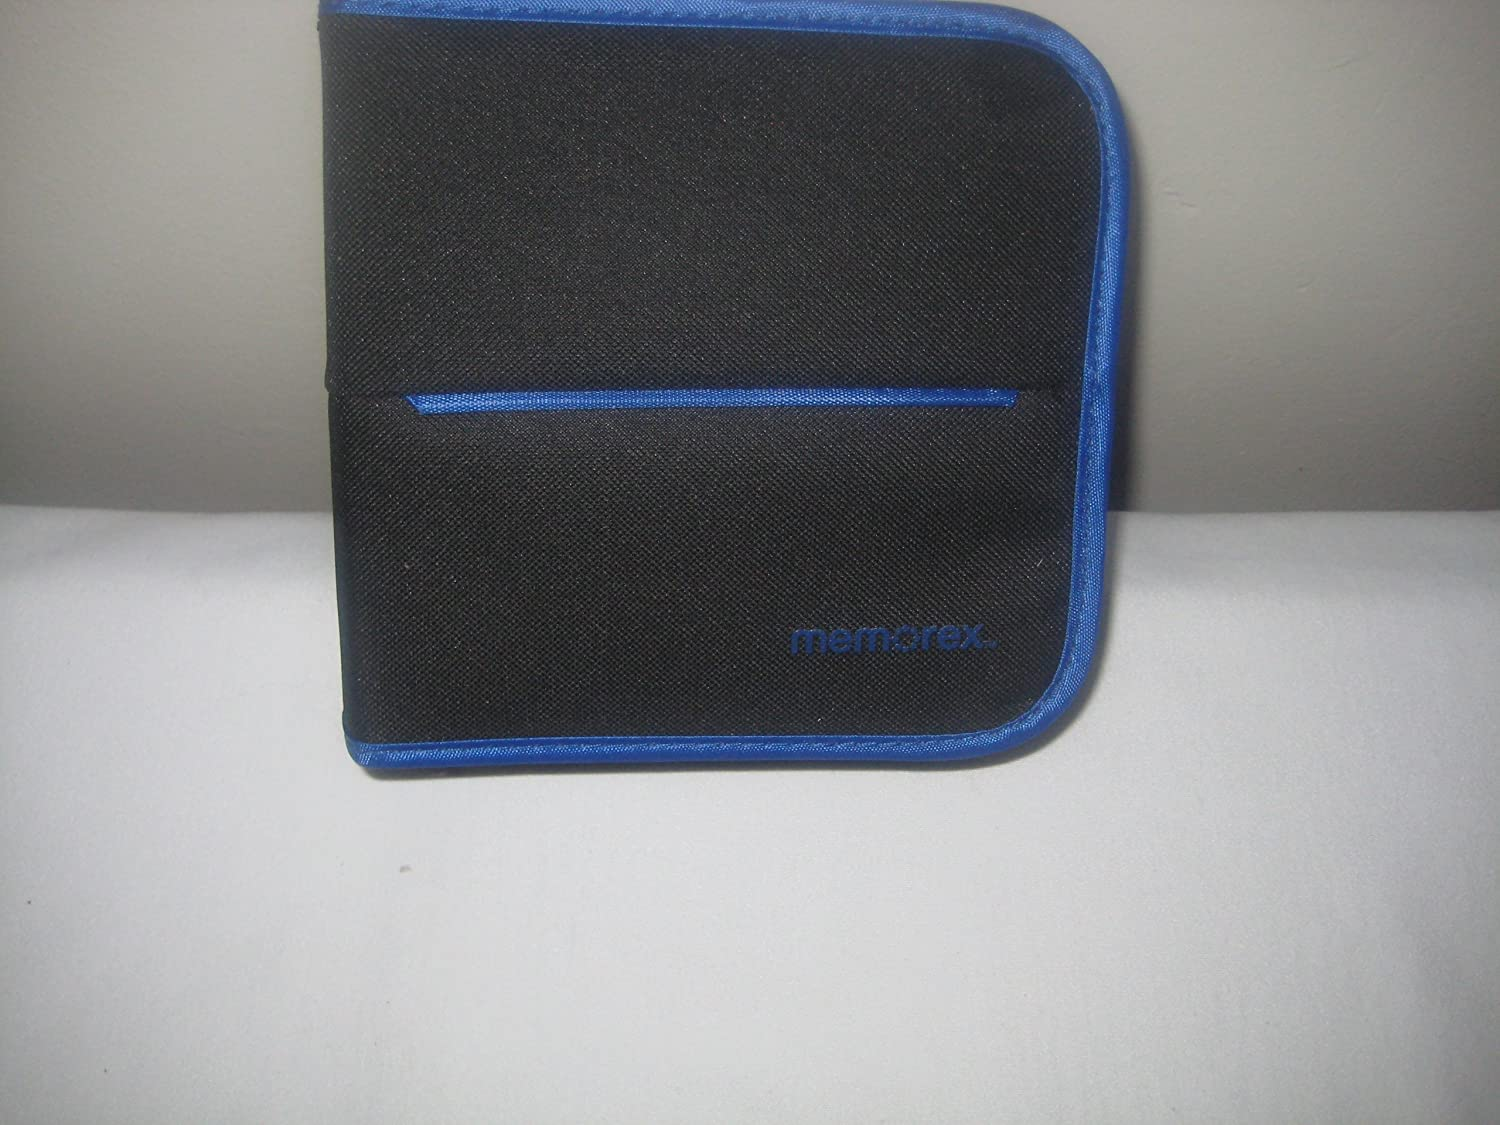 48 Count 32020021682 Memorex CD//DVD Nylon Wallet Black with Blue Piping